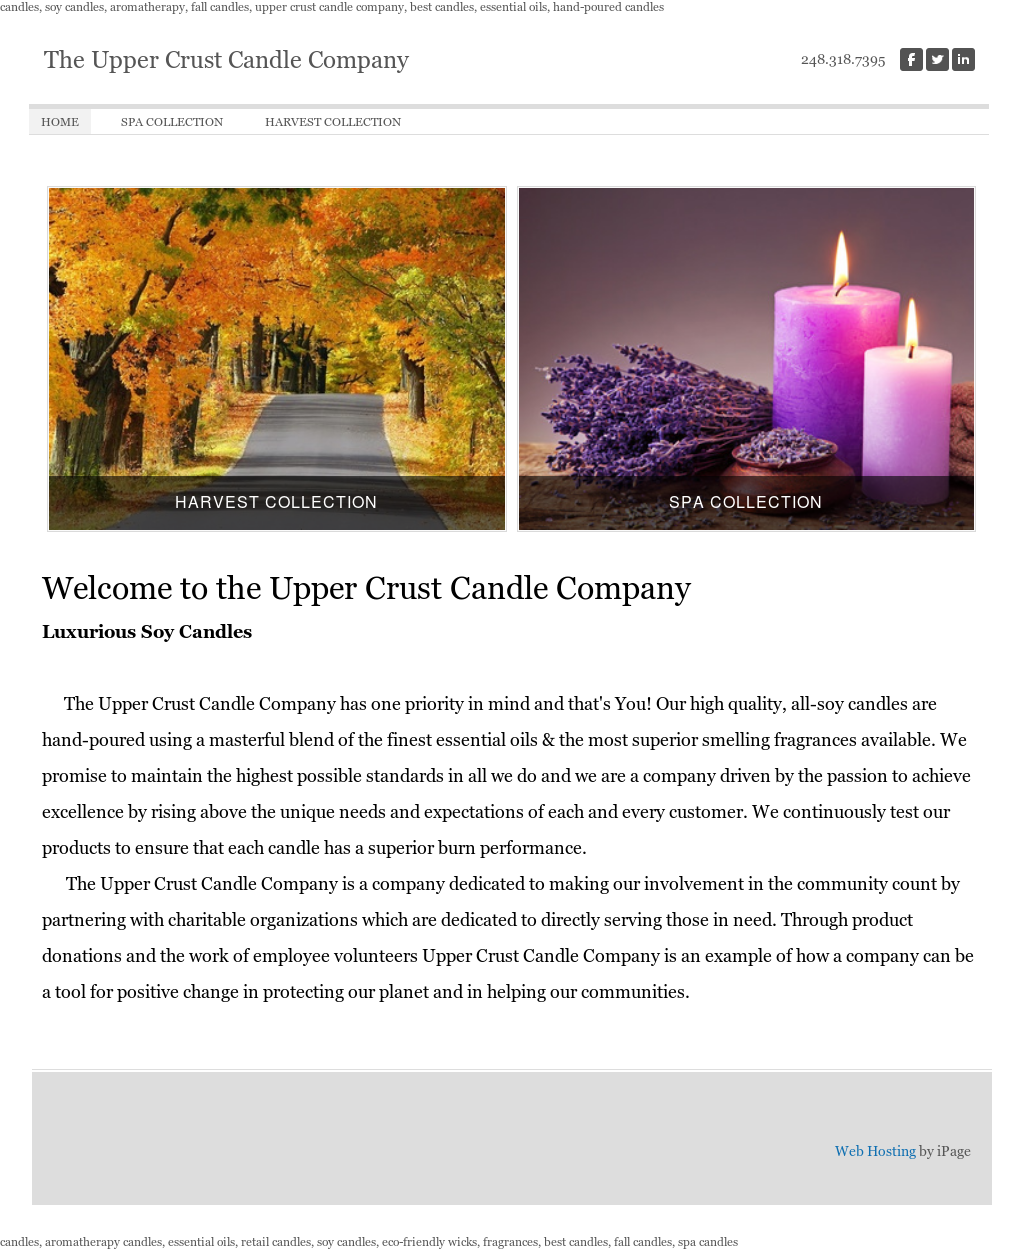 Upper Crust Candle Company Competitors, Revenue and